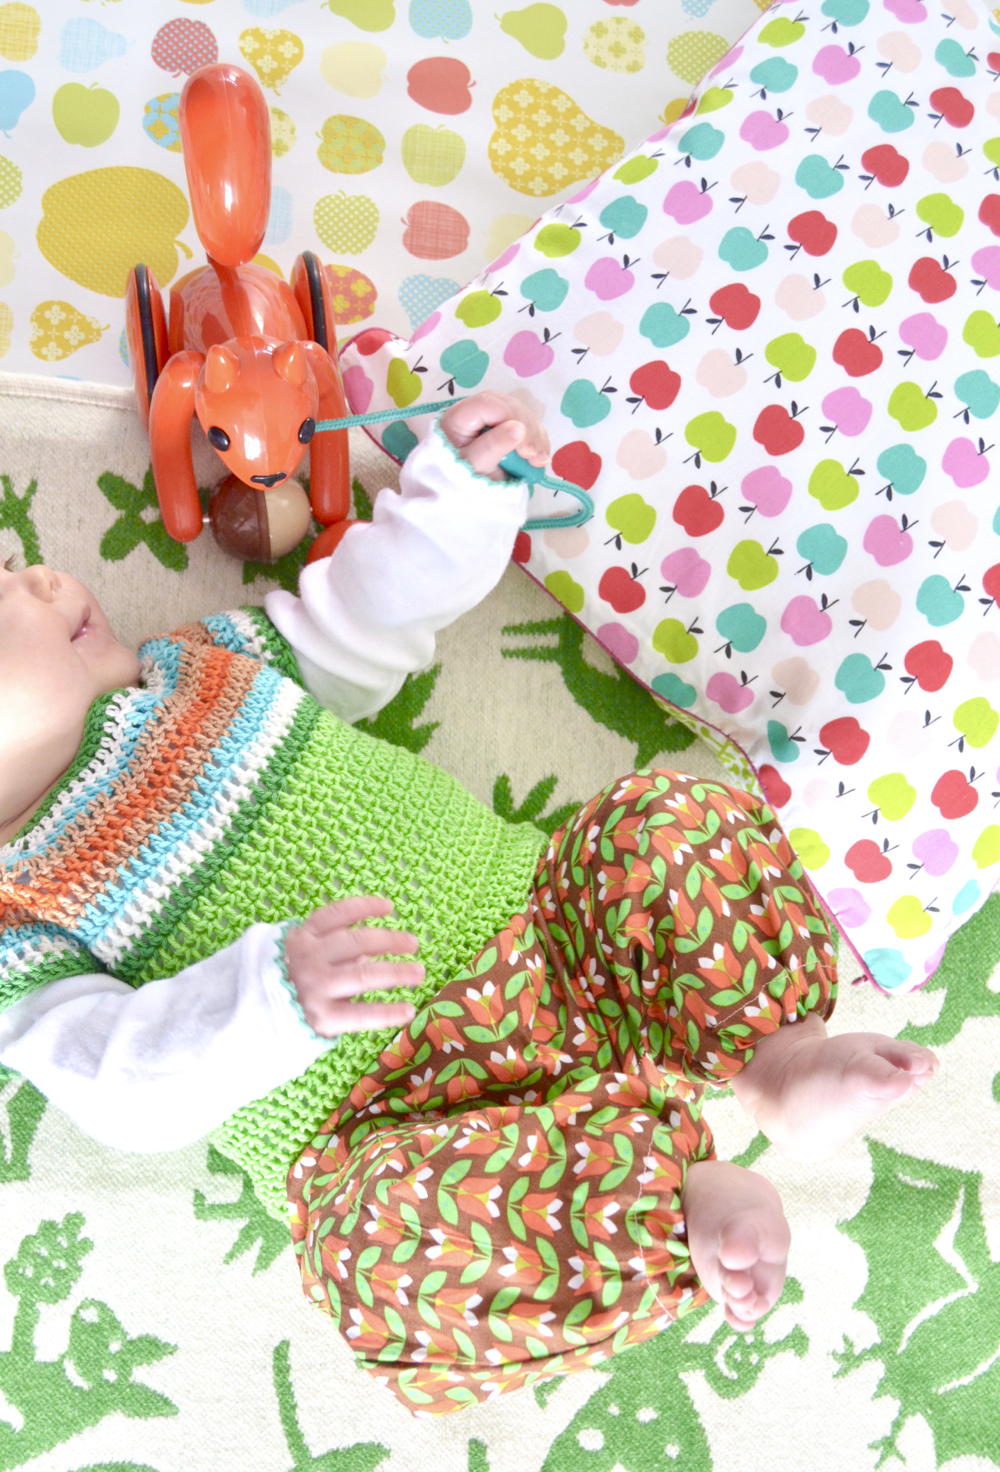 150 Baby Quilt Patronen.Retro Sweater For The Littlest Ones Byclaire Crochet